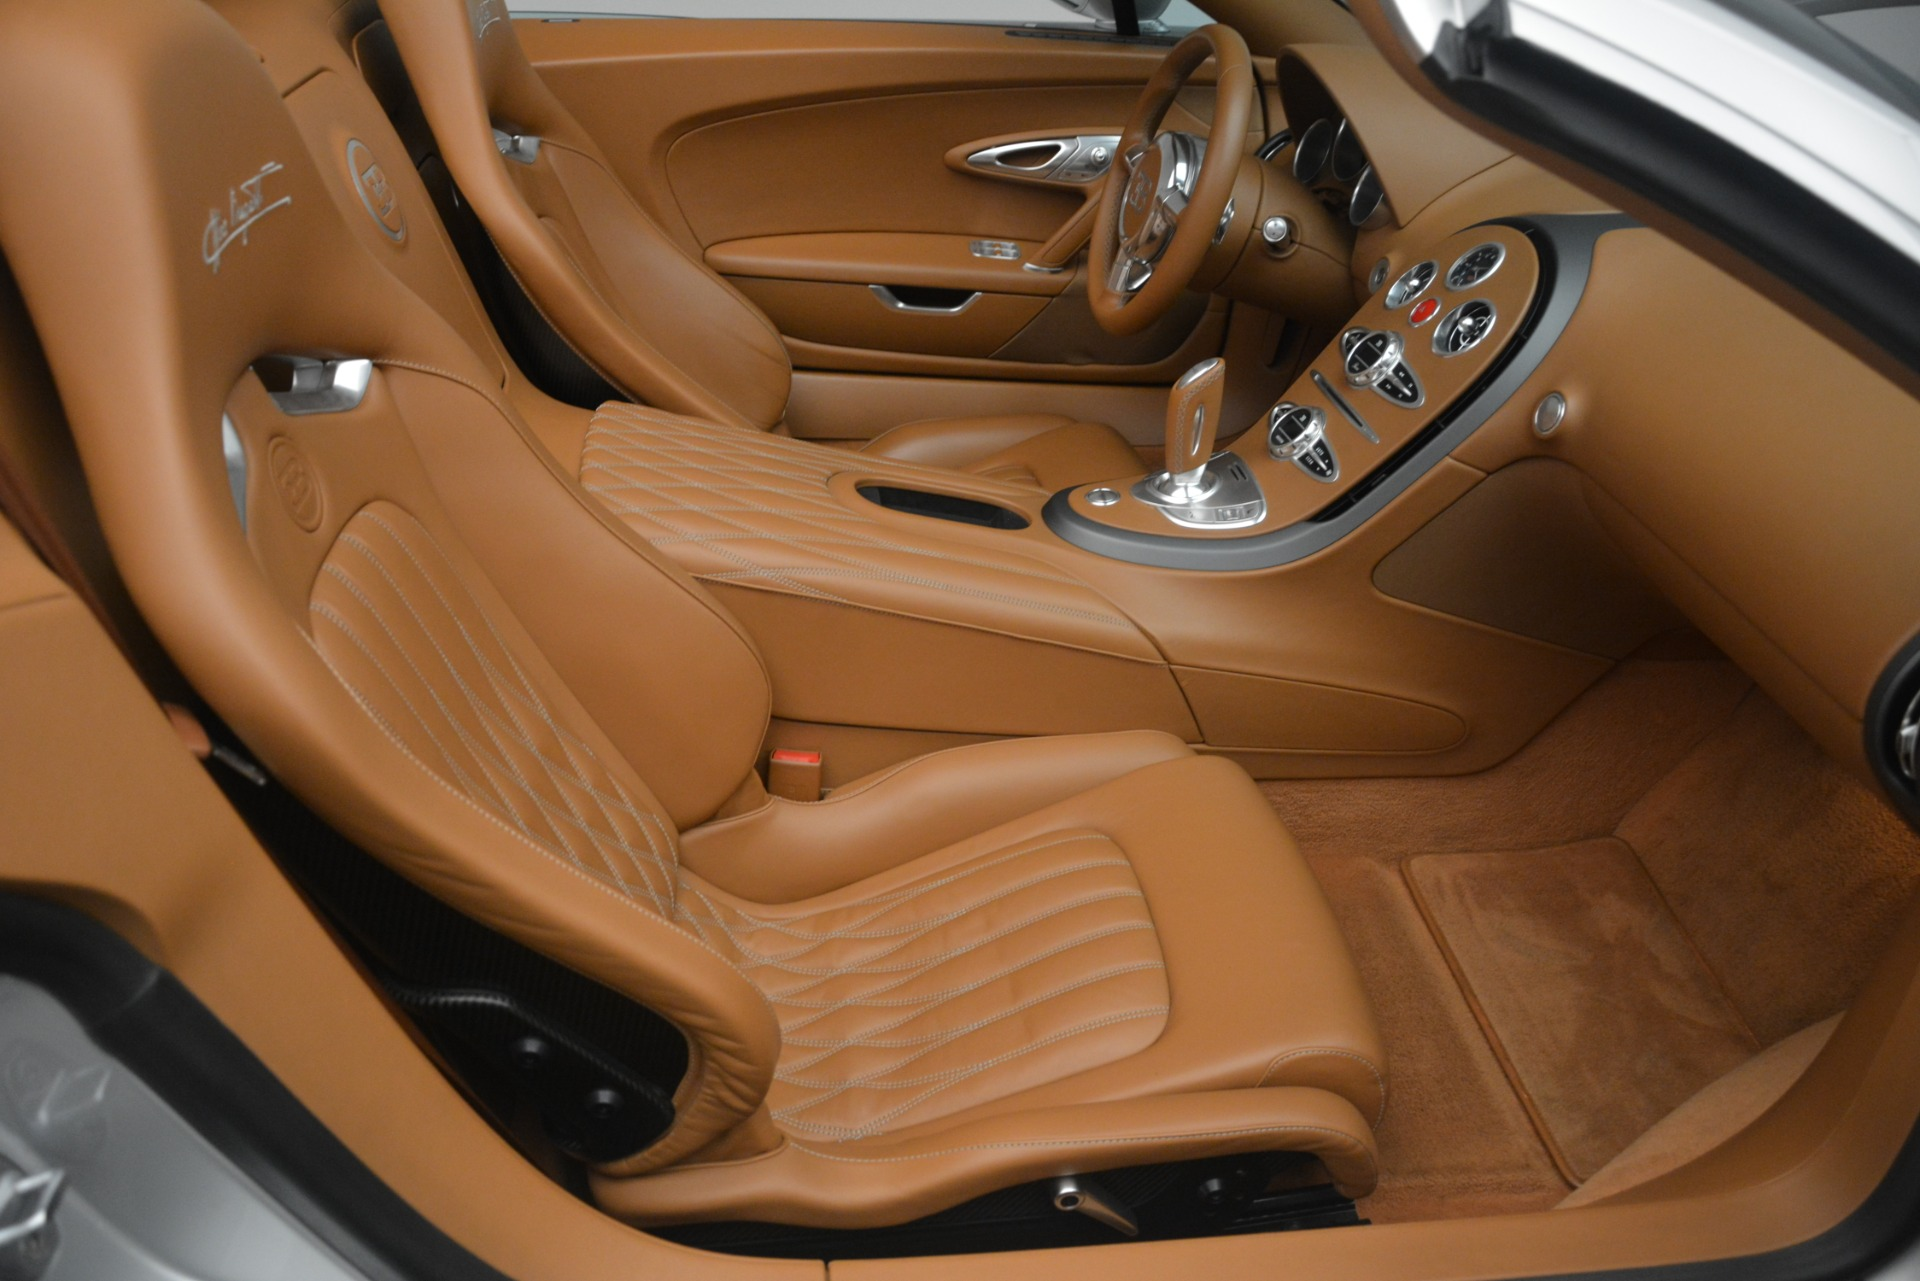 Used 2010 Bugatti Veyron 16.4 Grand Sport For Sale In Westport, CT 3159_p34